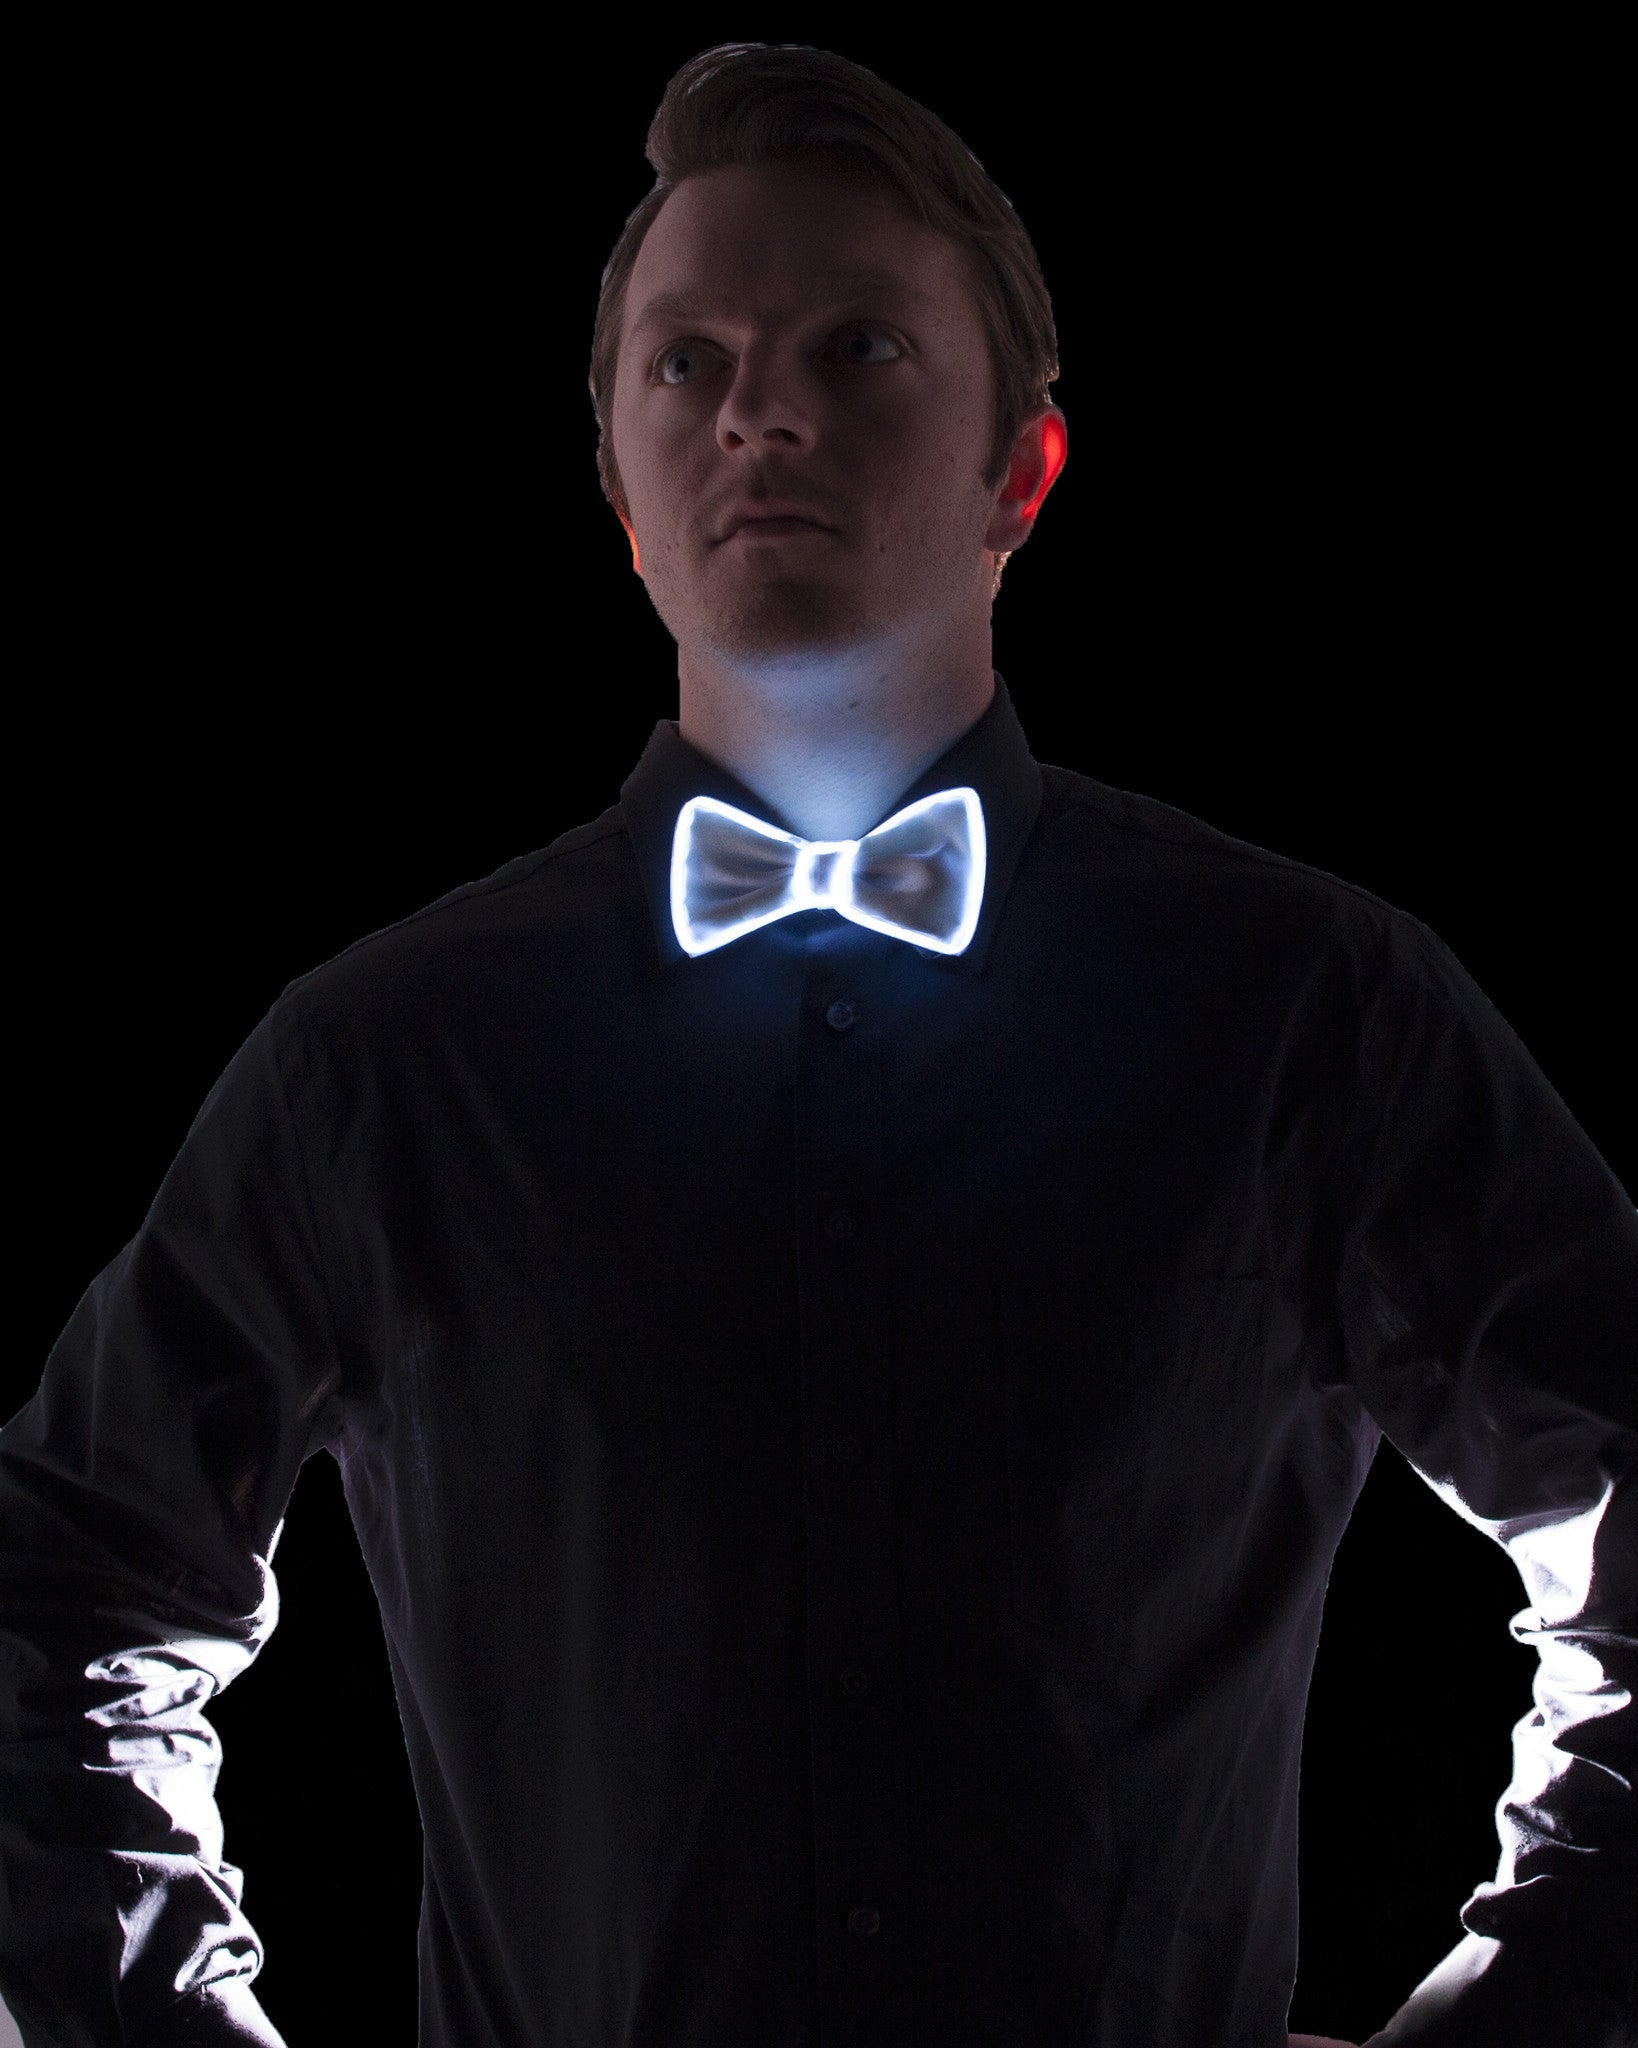 White Light Up Bow Tie - Electric Styles | World's Number 1 Light Up Shoe Store - {product_type}} - White - 6